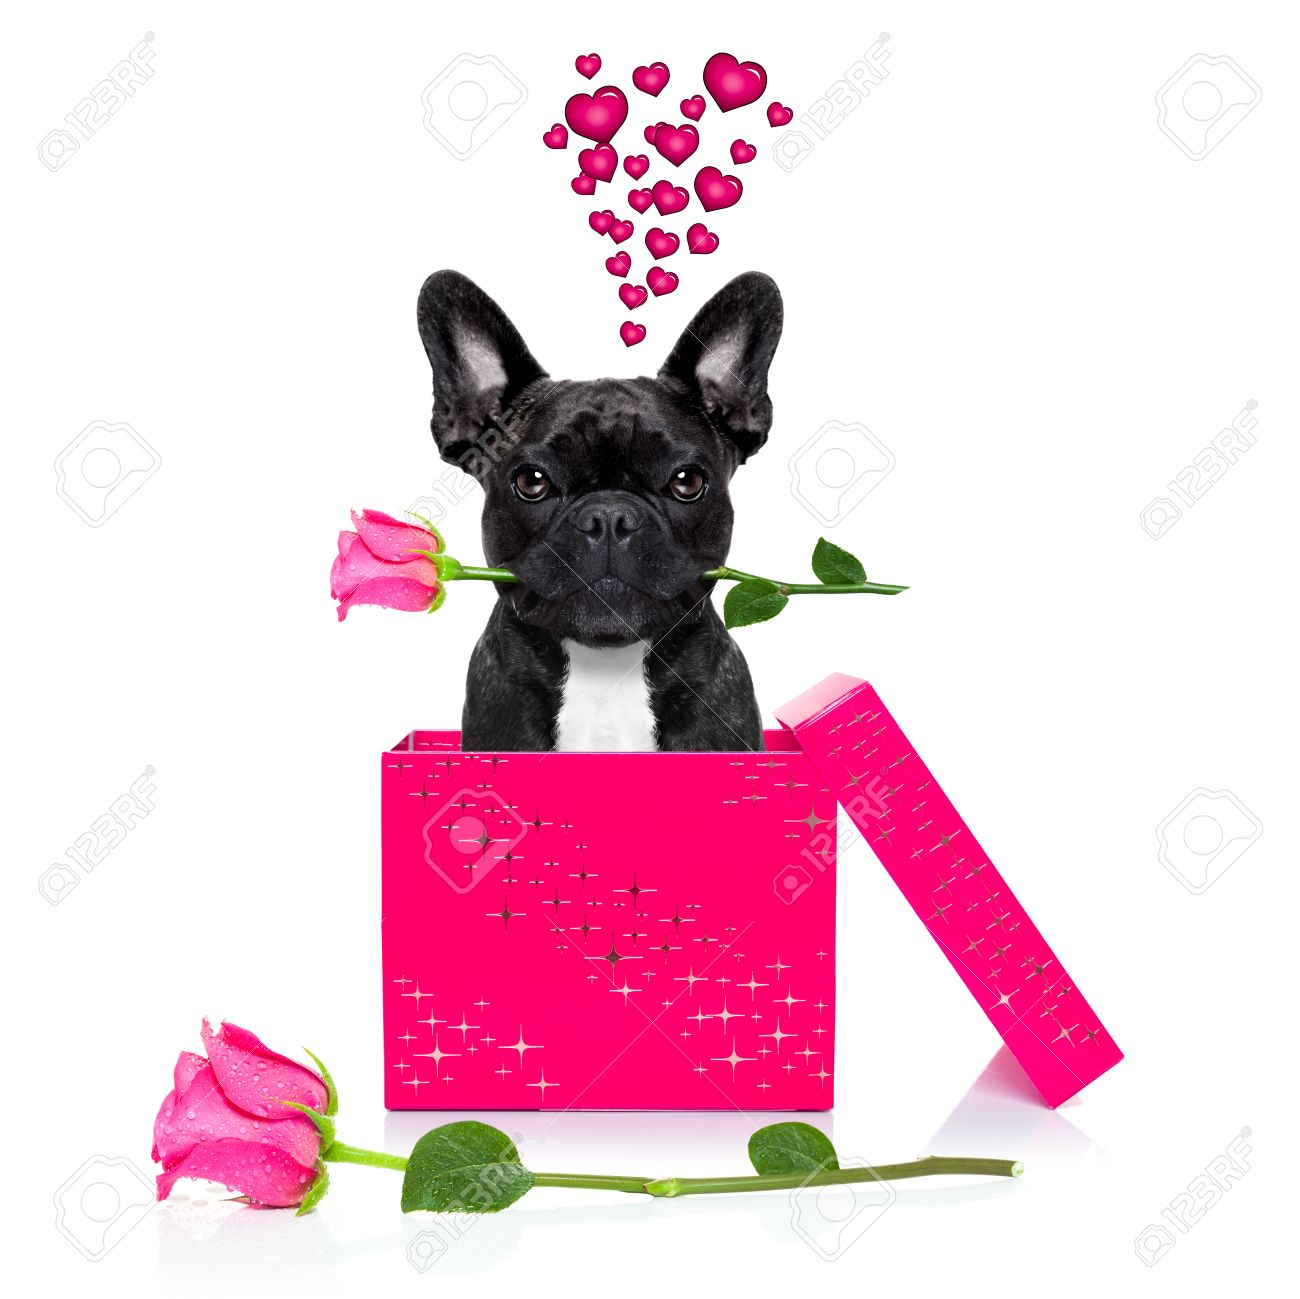 french bulldog dog with valentines day rose in mouth , jumping out of a present or gift box , as surprise, isolated on white background - 50261201